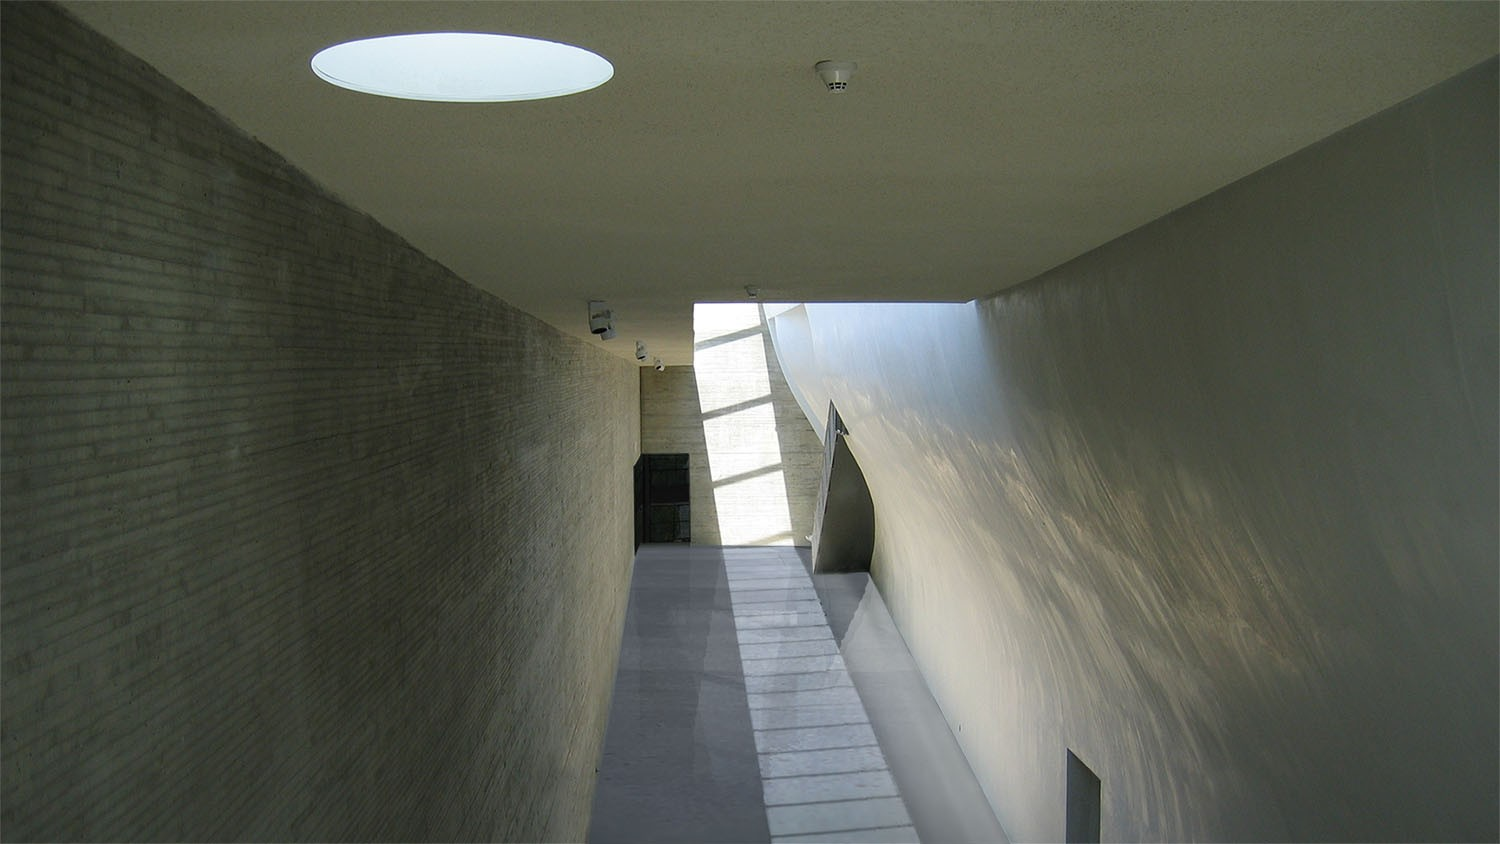 https://stevenholl.sfo2.digitaloceanspaces.com/uploads/projects/project-images/StevenHollArchitects_Whitney_Interior3_WH.jpg